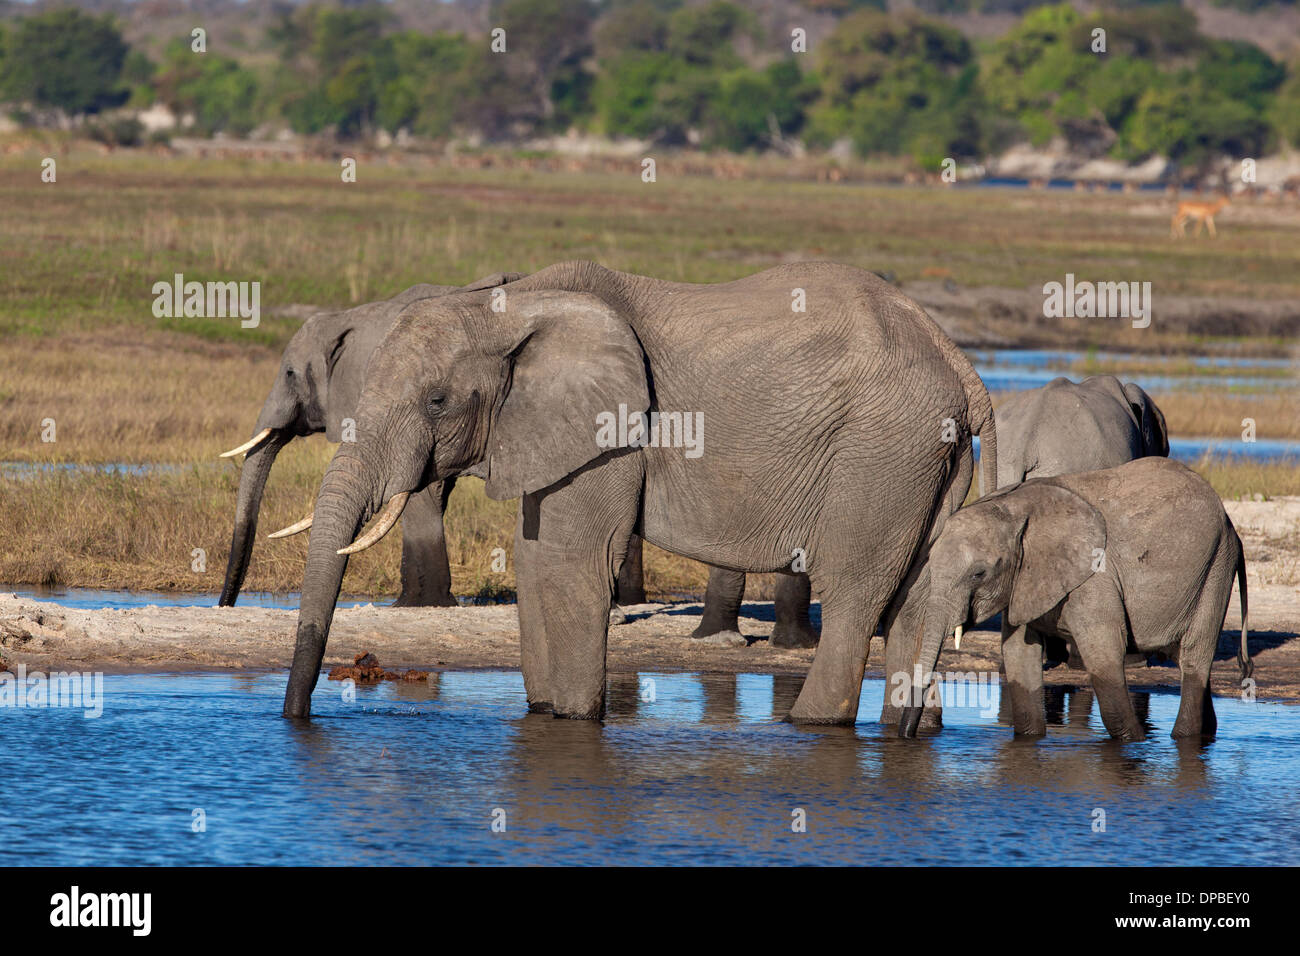 An Elephant Herd ( Loxodonta africana ) drinking at the Chobe River in Botswana. - Stock Image